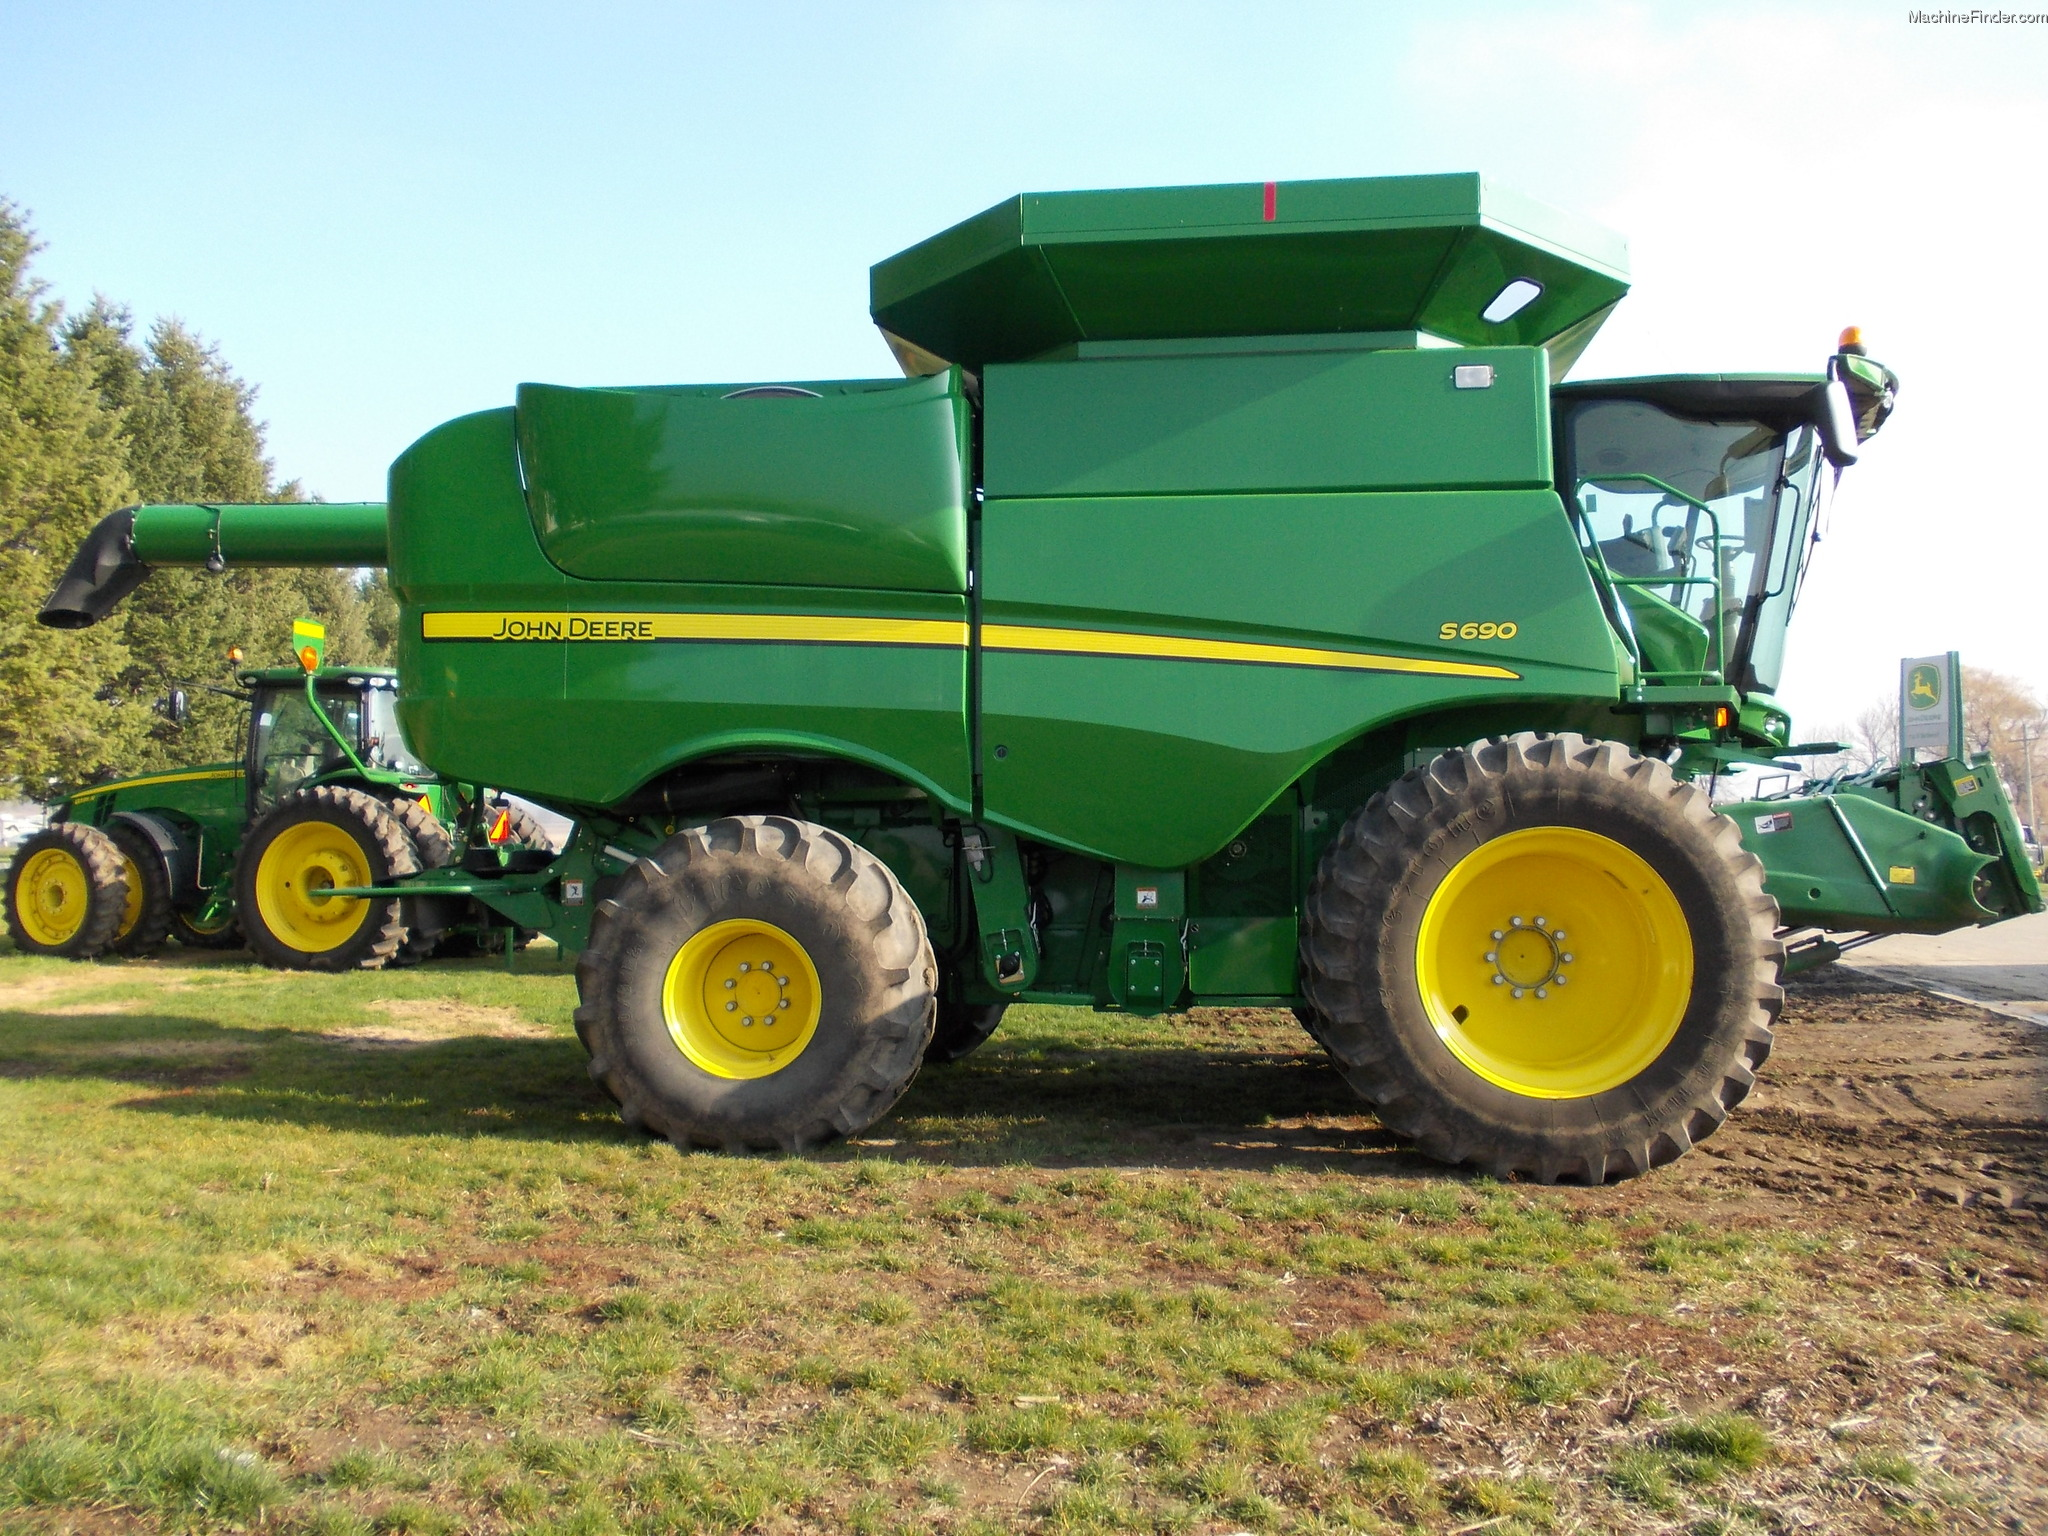 2012 John Deere S690 Combine http://www.machinefinder.com/ww/en-US/machine/2281439